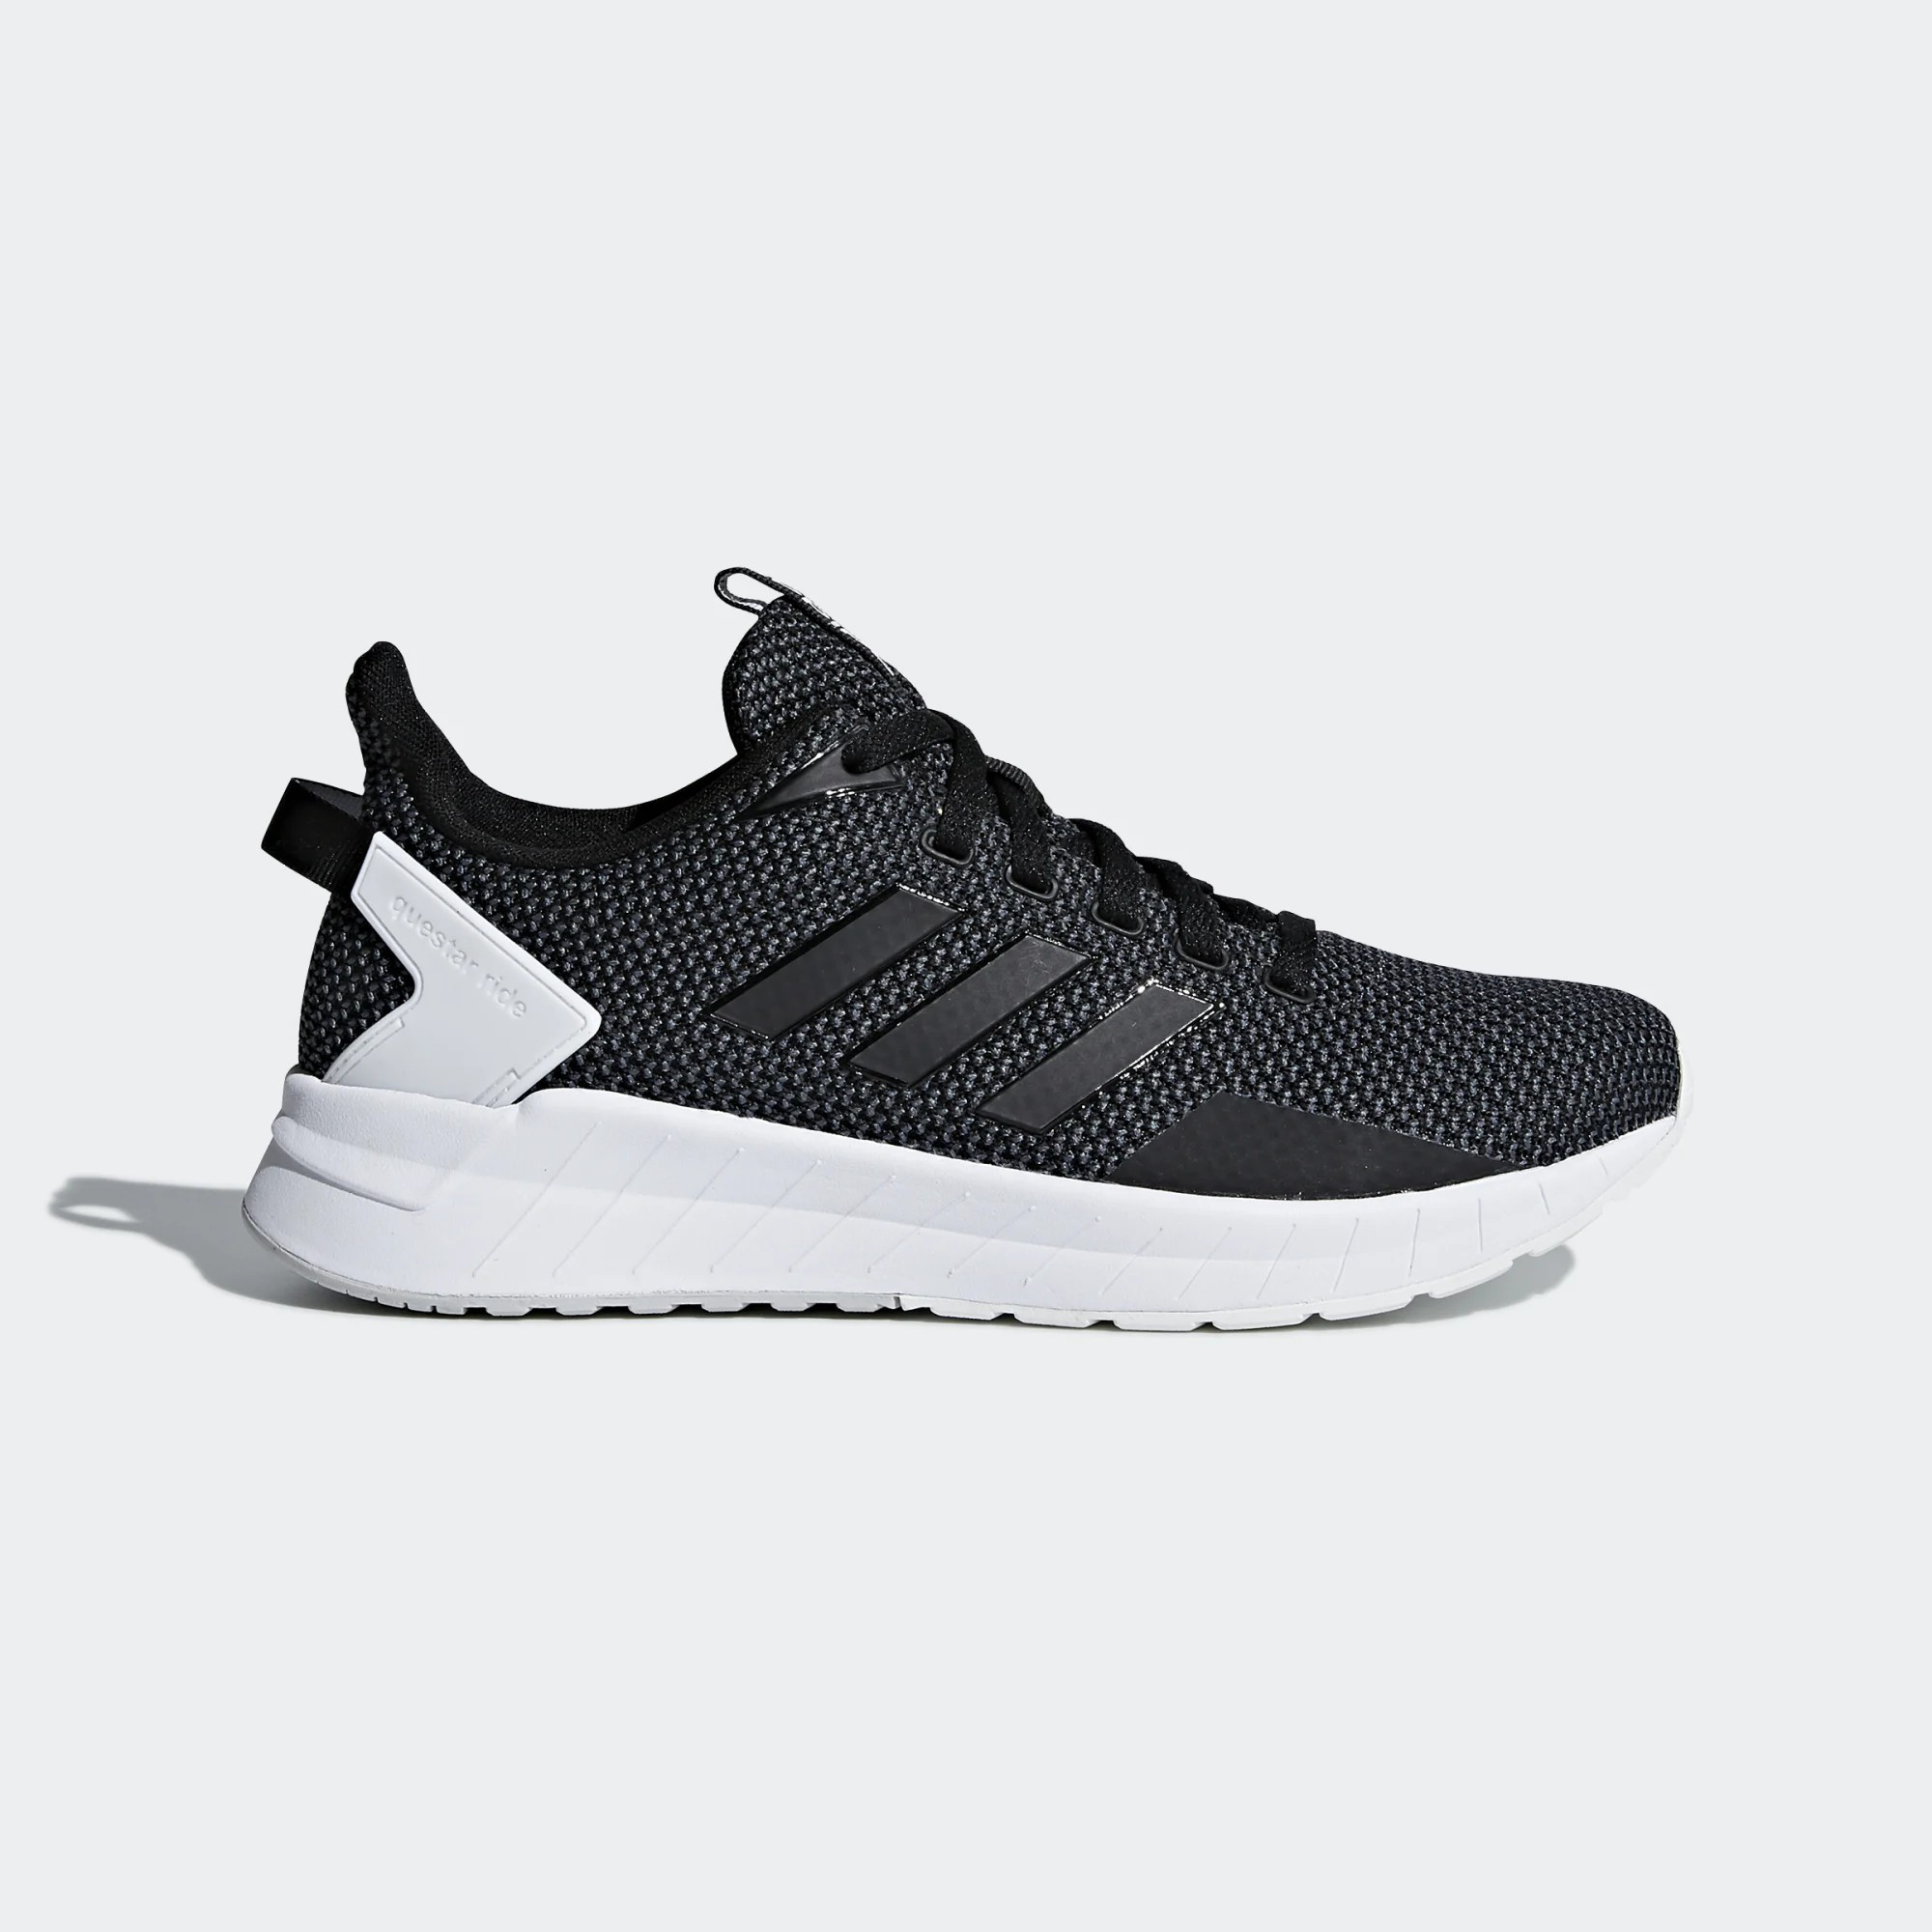 Adidas Questar Ride Carbon/Noir/Gris DB1308